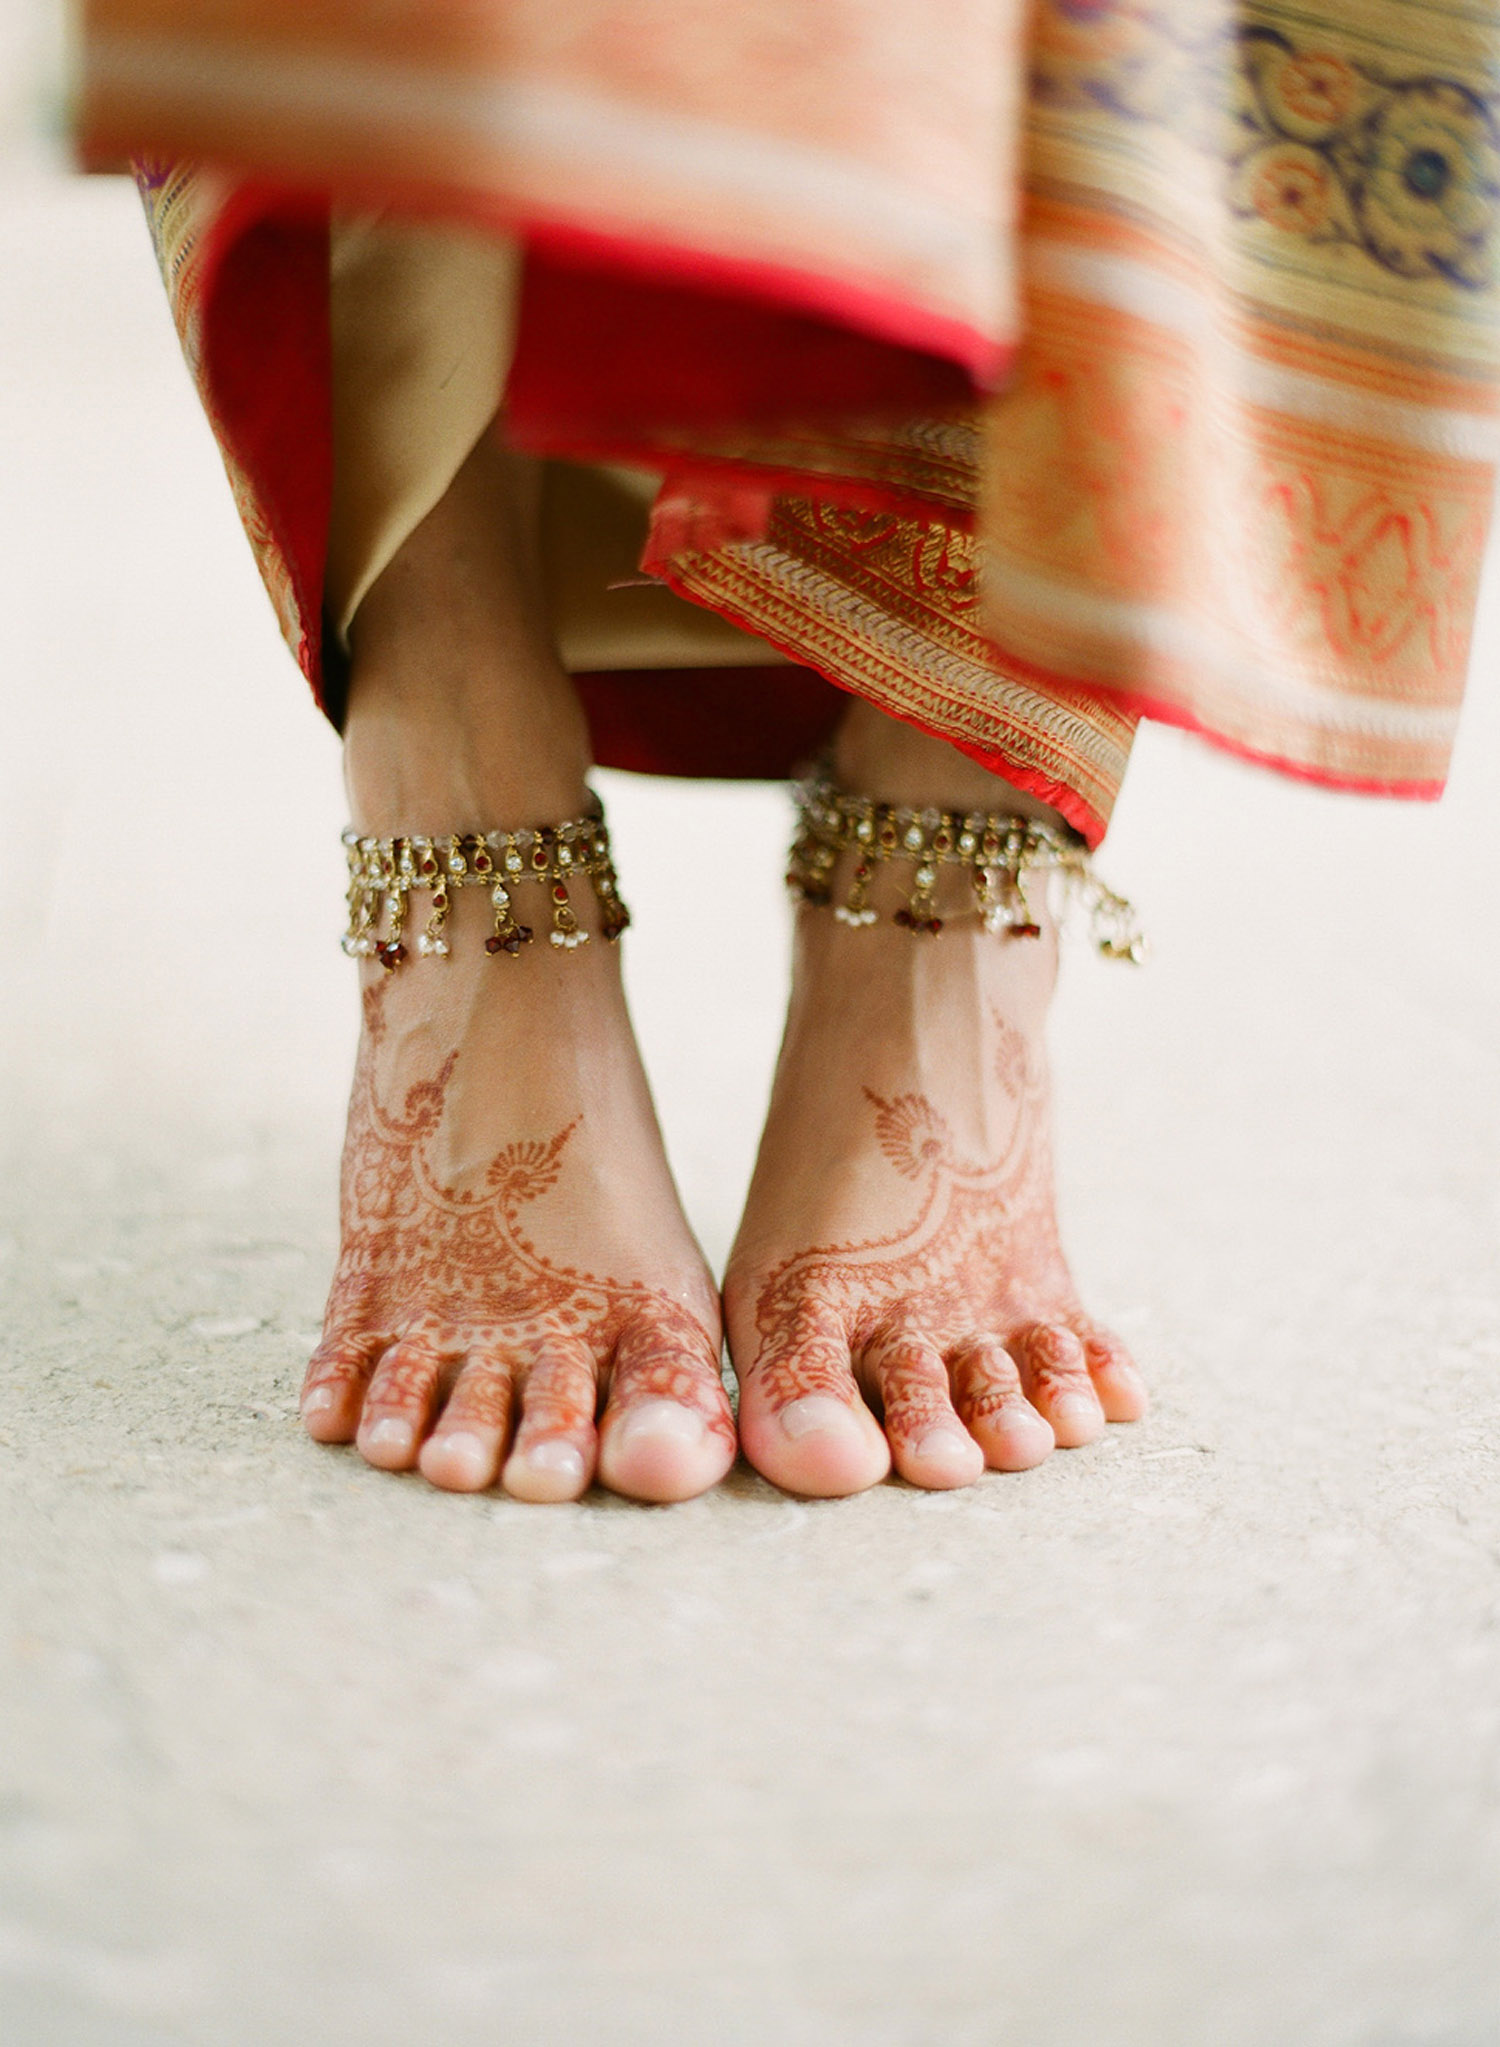 destination wedding photographer lexia frank- a top indian wedding photographer - photographs this luxury indian wedding inflorida and the bride's mehndi designs on her feet with anklets on film as she is a film photographer for indian weddings because she prefers the tonality of film and vibrant colors for indian weddings. manish malhotra